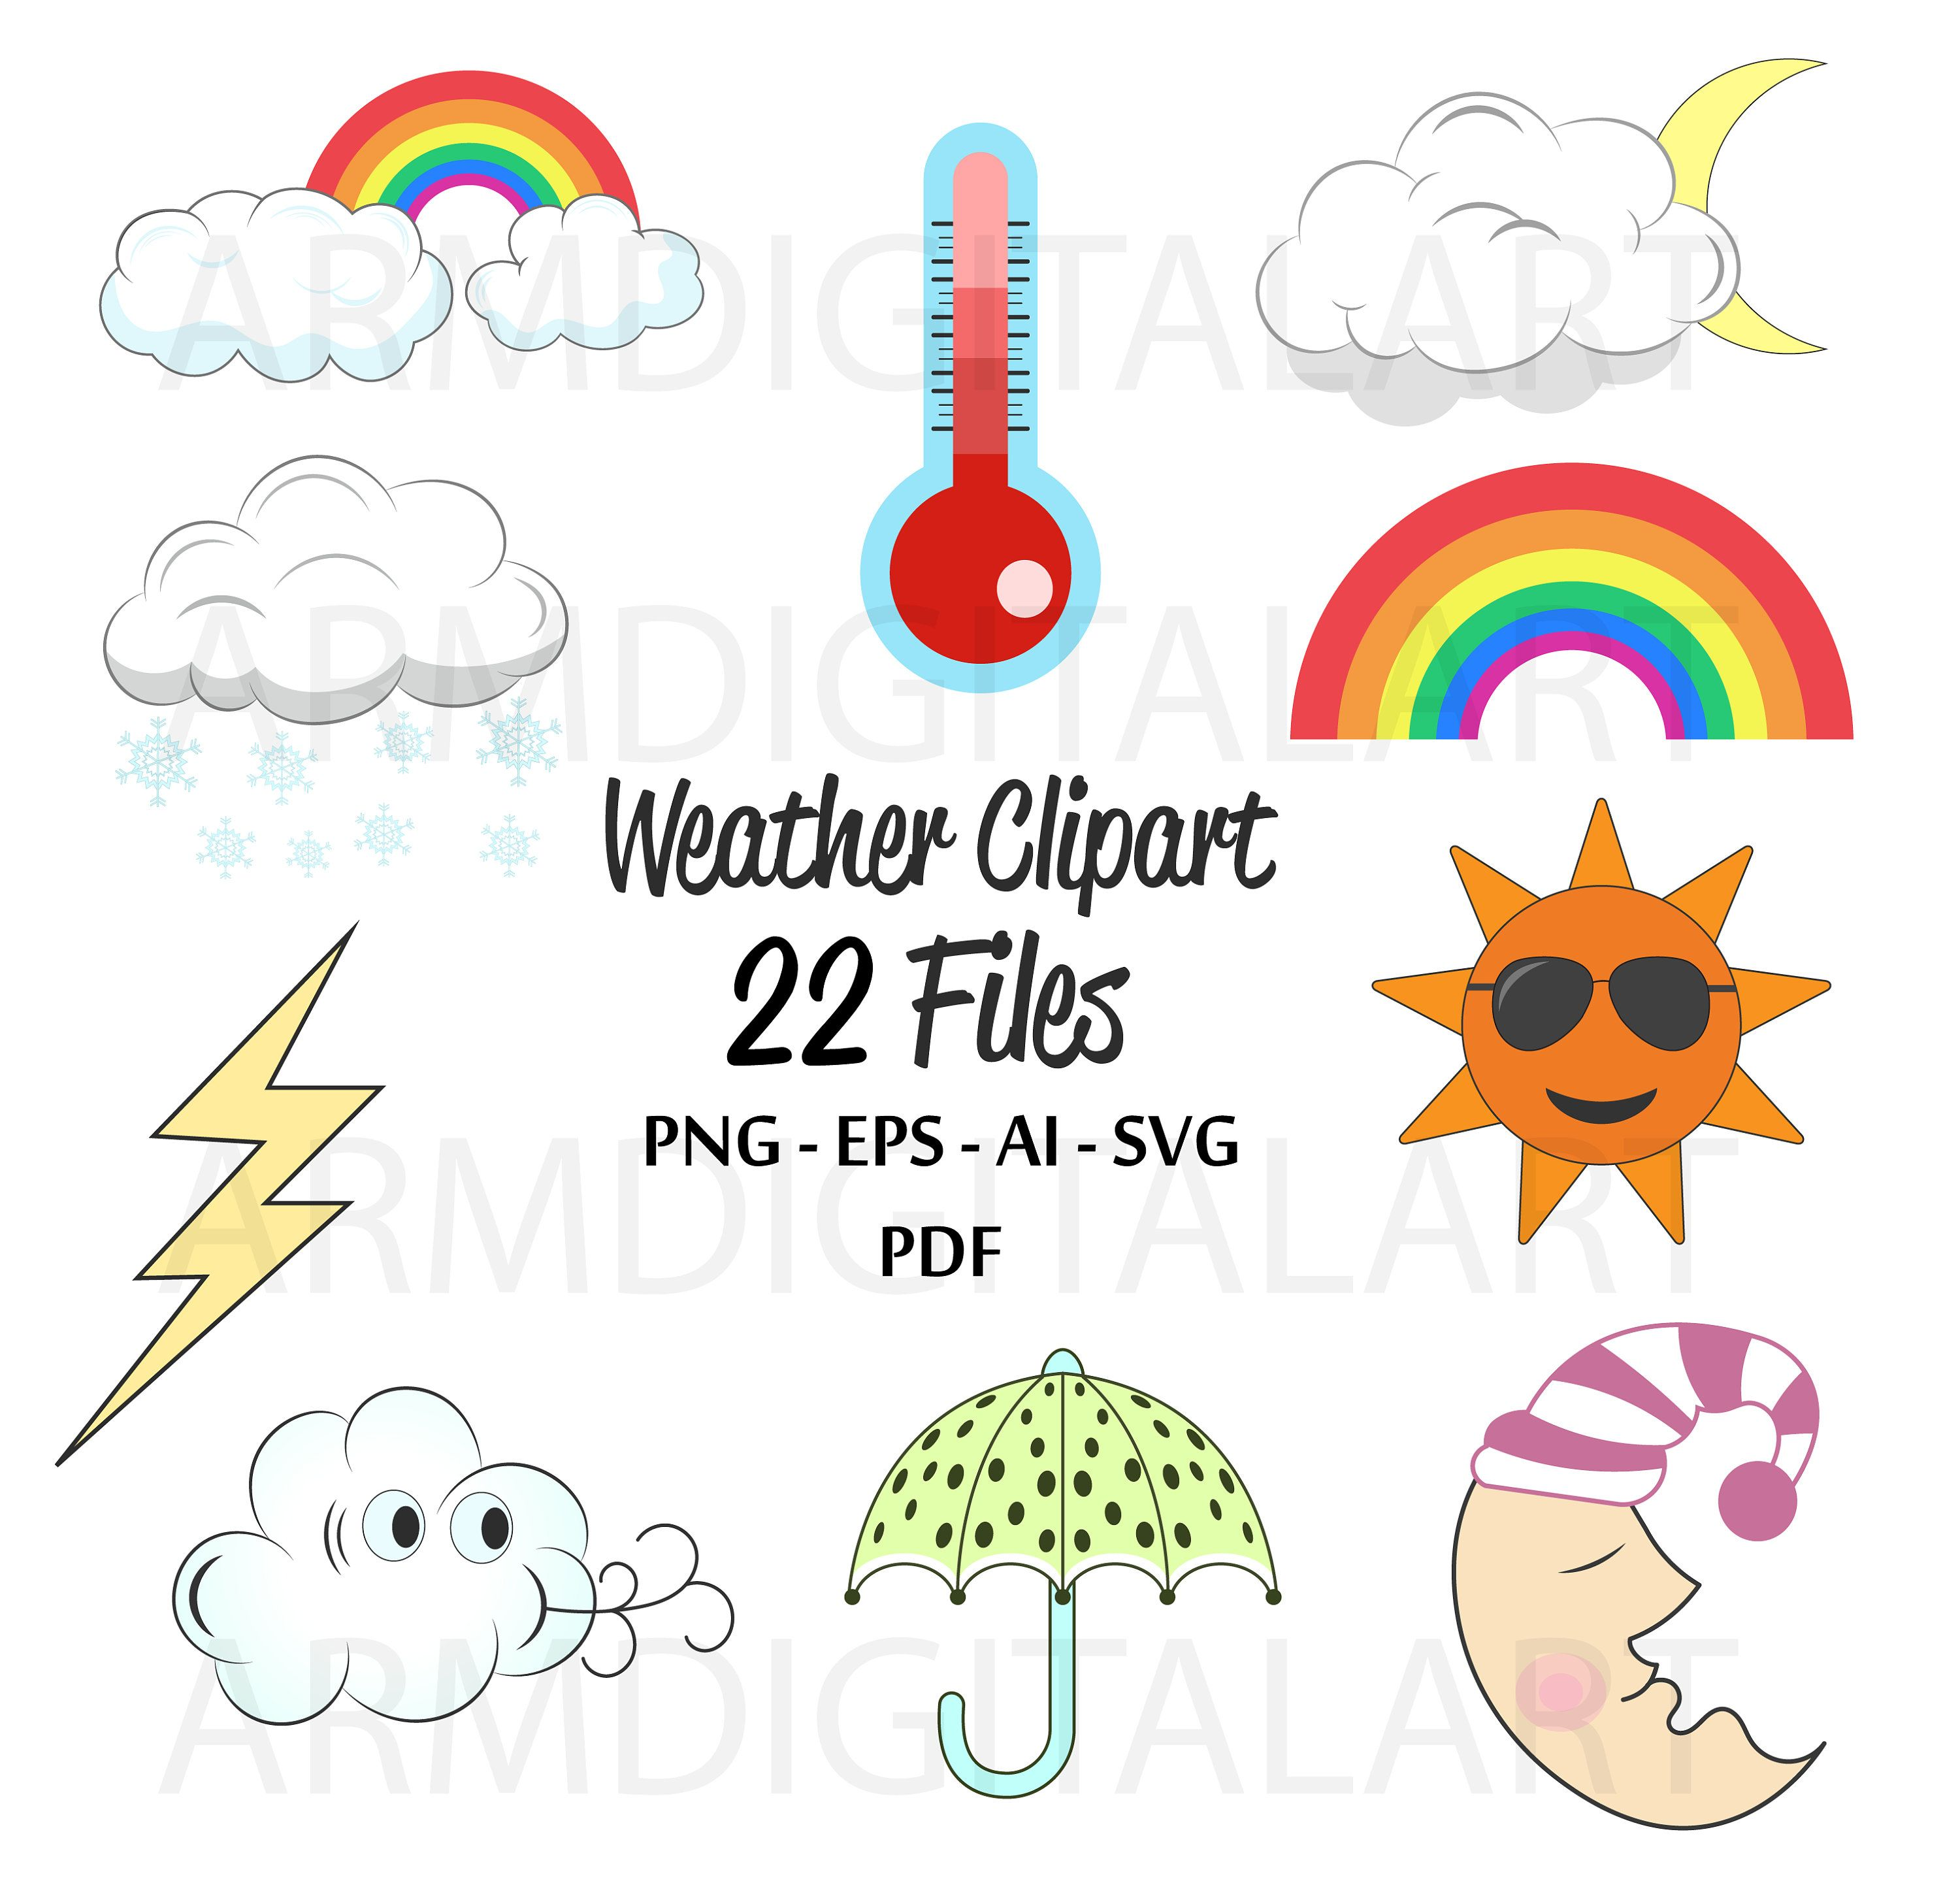 hight resolution of weather clipart weather graphics commercial use forecast clipart planner accessories weather icons cloud clipart sun vector files by armdigitalart